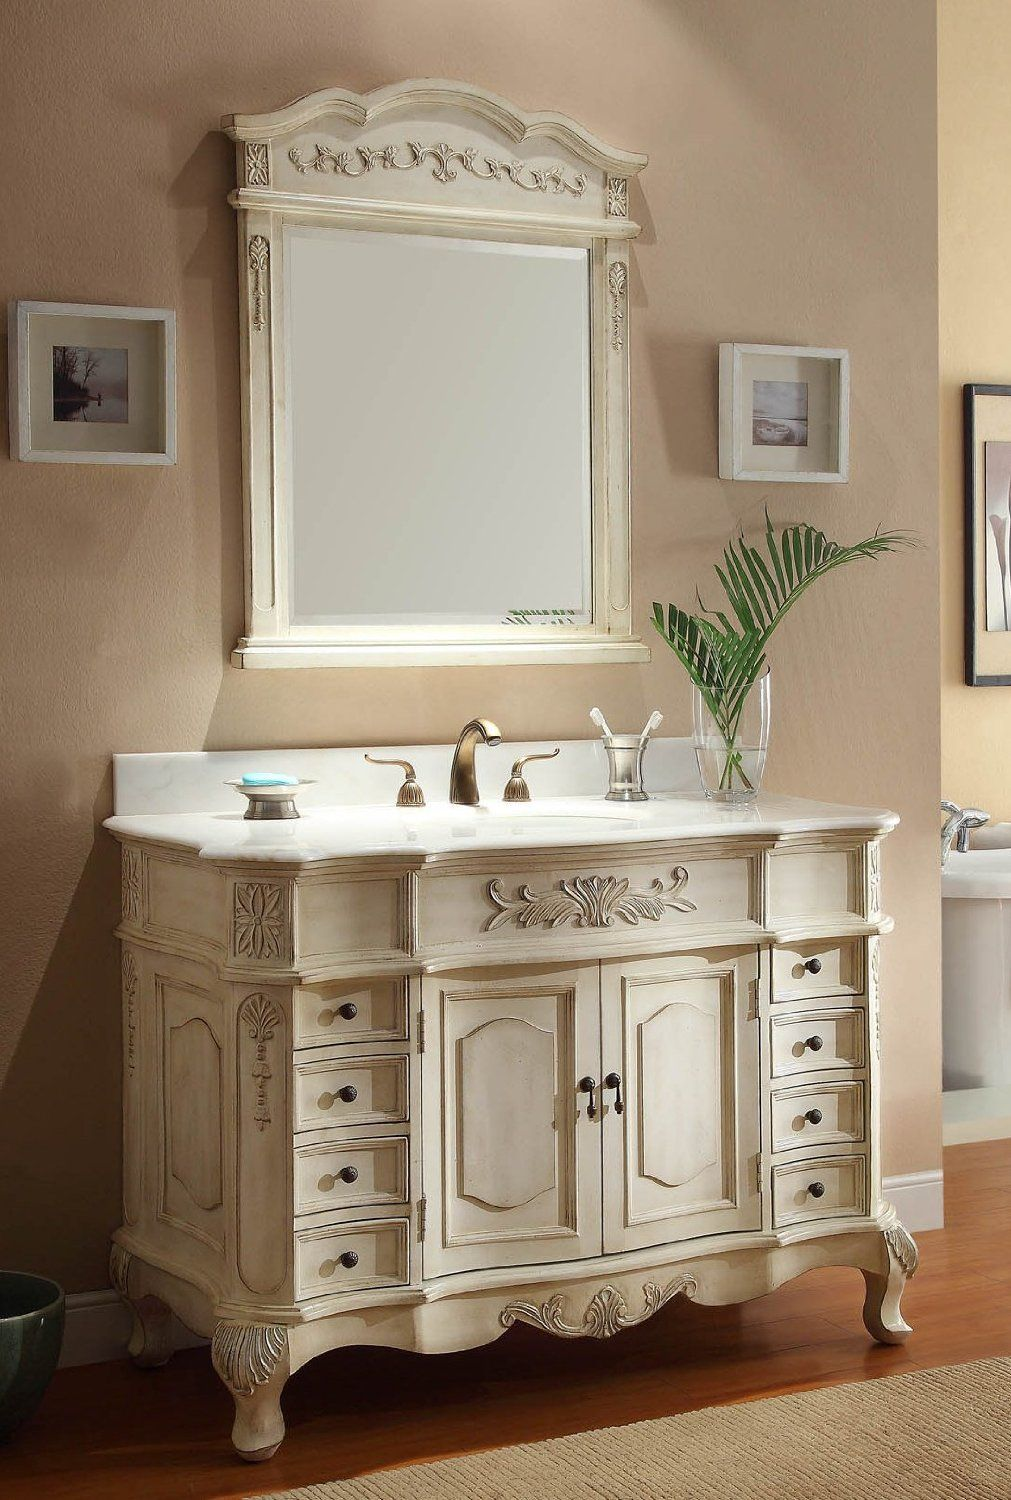 Bathroom Cabinets 48 Inch adelina 48 inch antique white bathroom vanity fully assembled